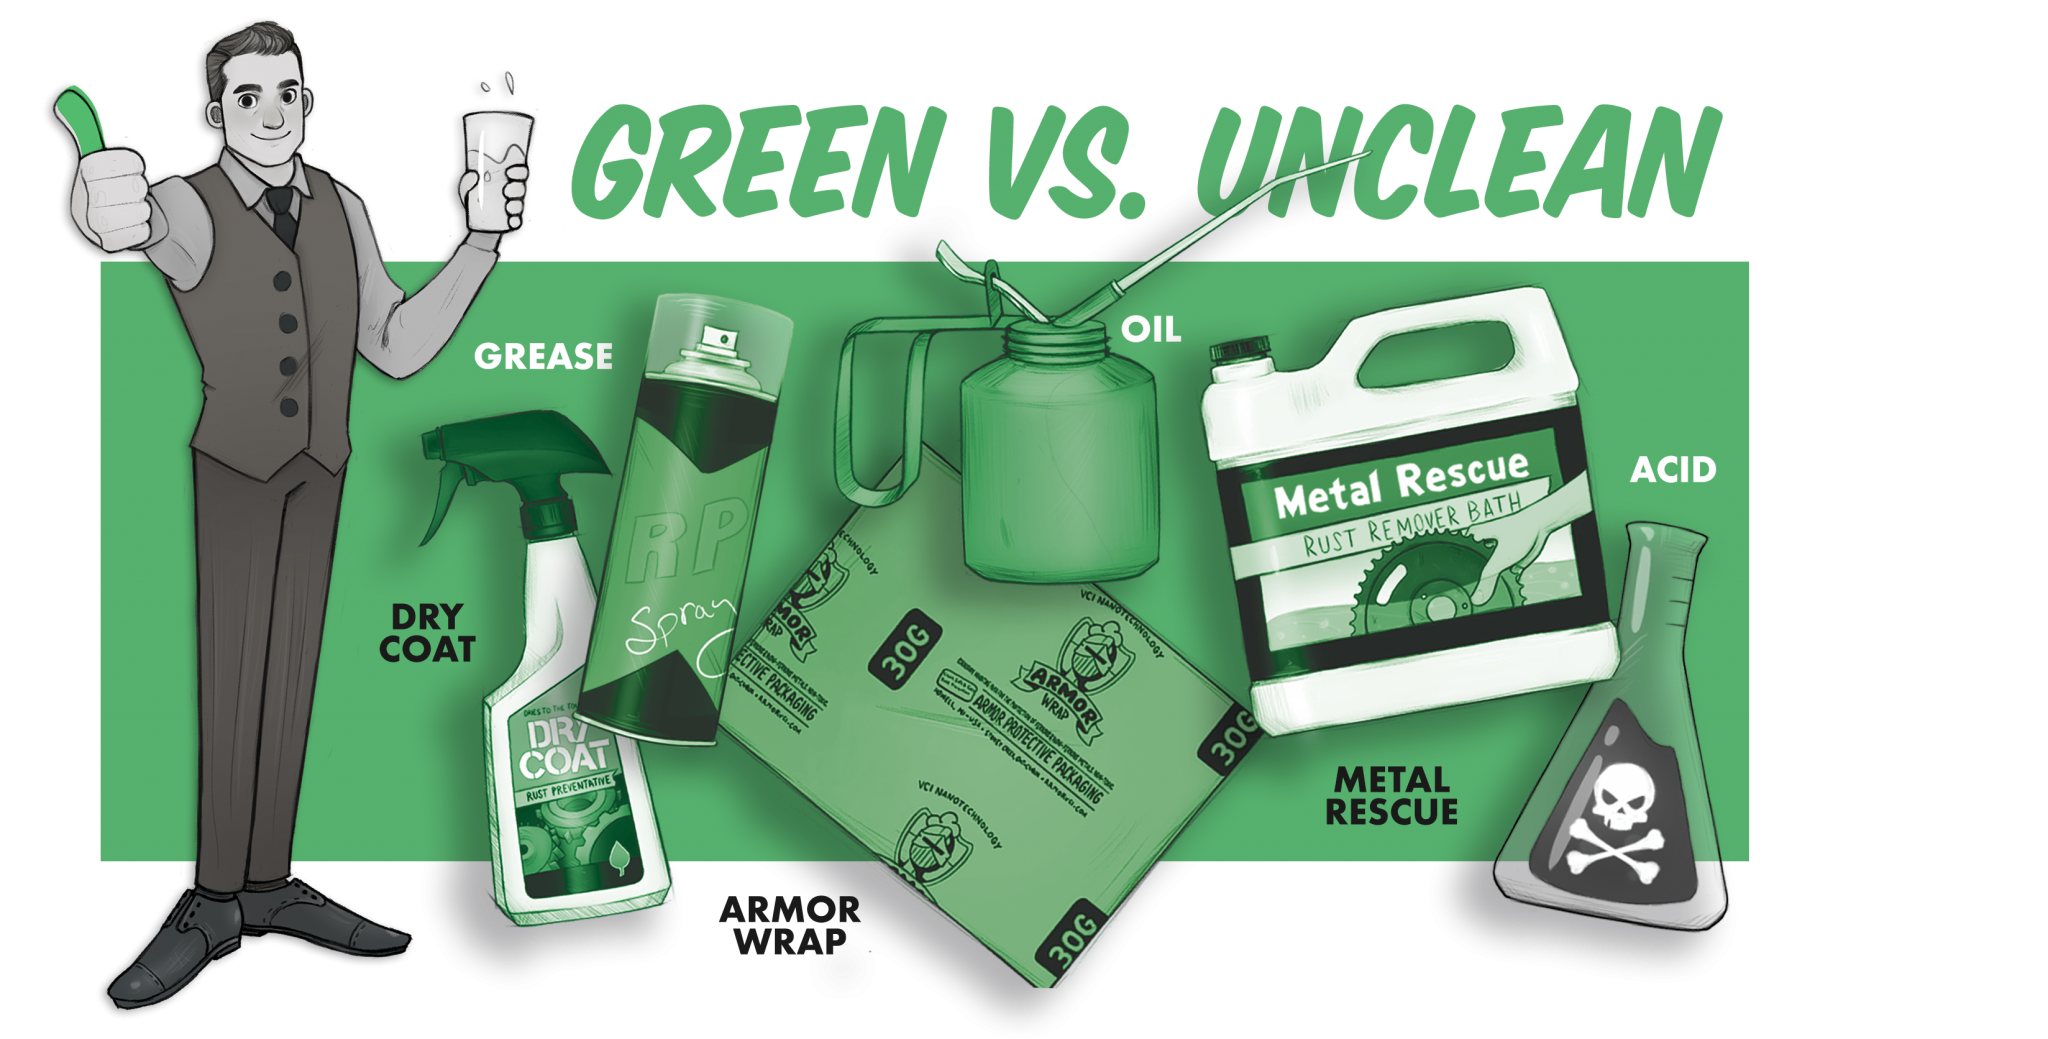 ARMOR Green Vs The Unclean Green Thumb